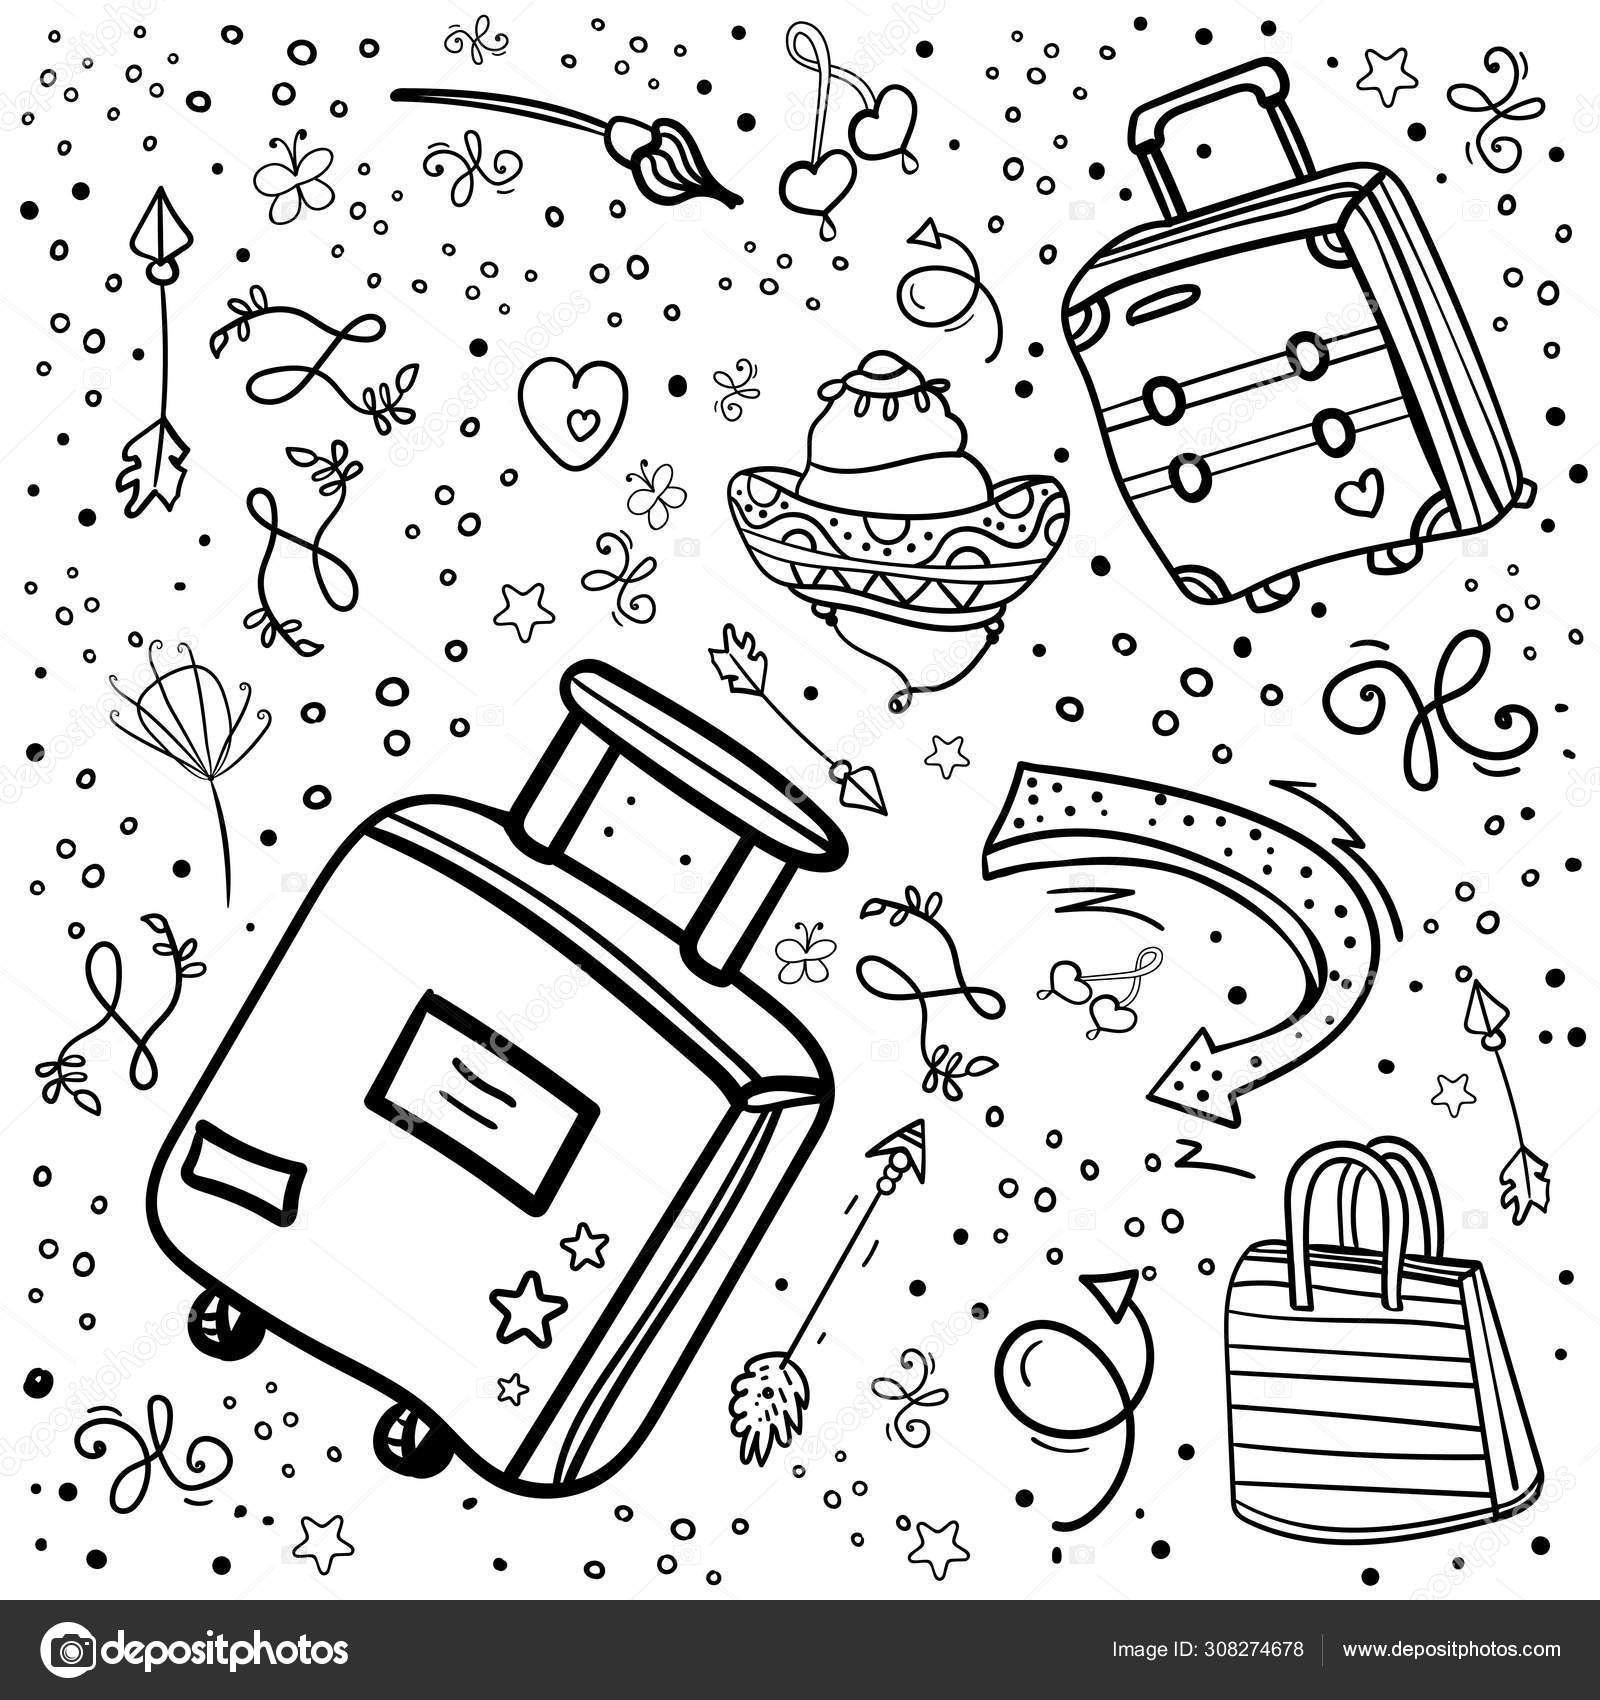 Free Mosaic Coloring Pages Free, Download Free Clip Art, Free Clip ... | 1700x1600